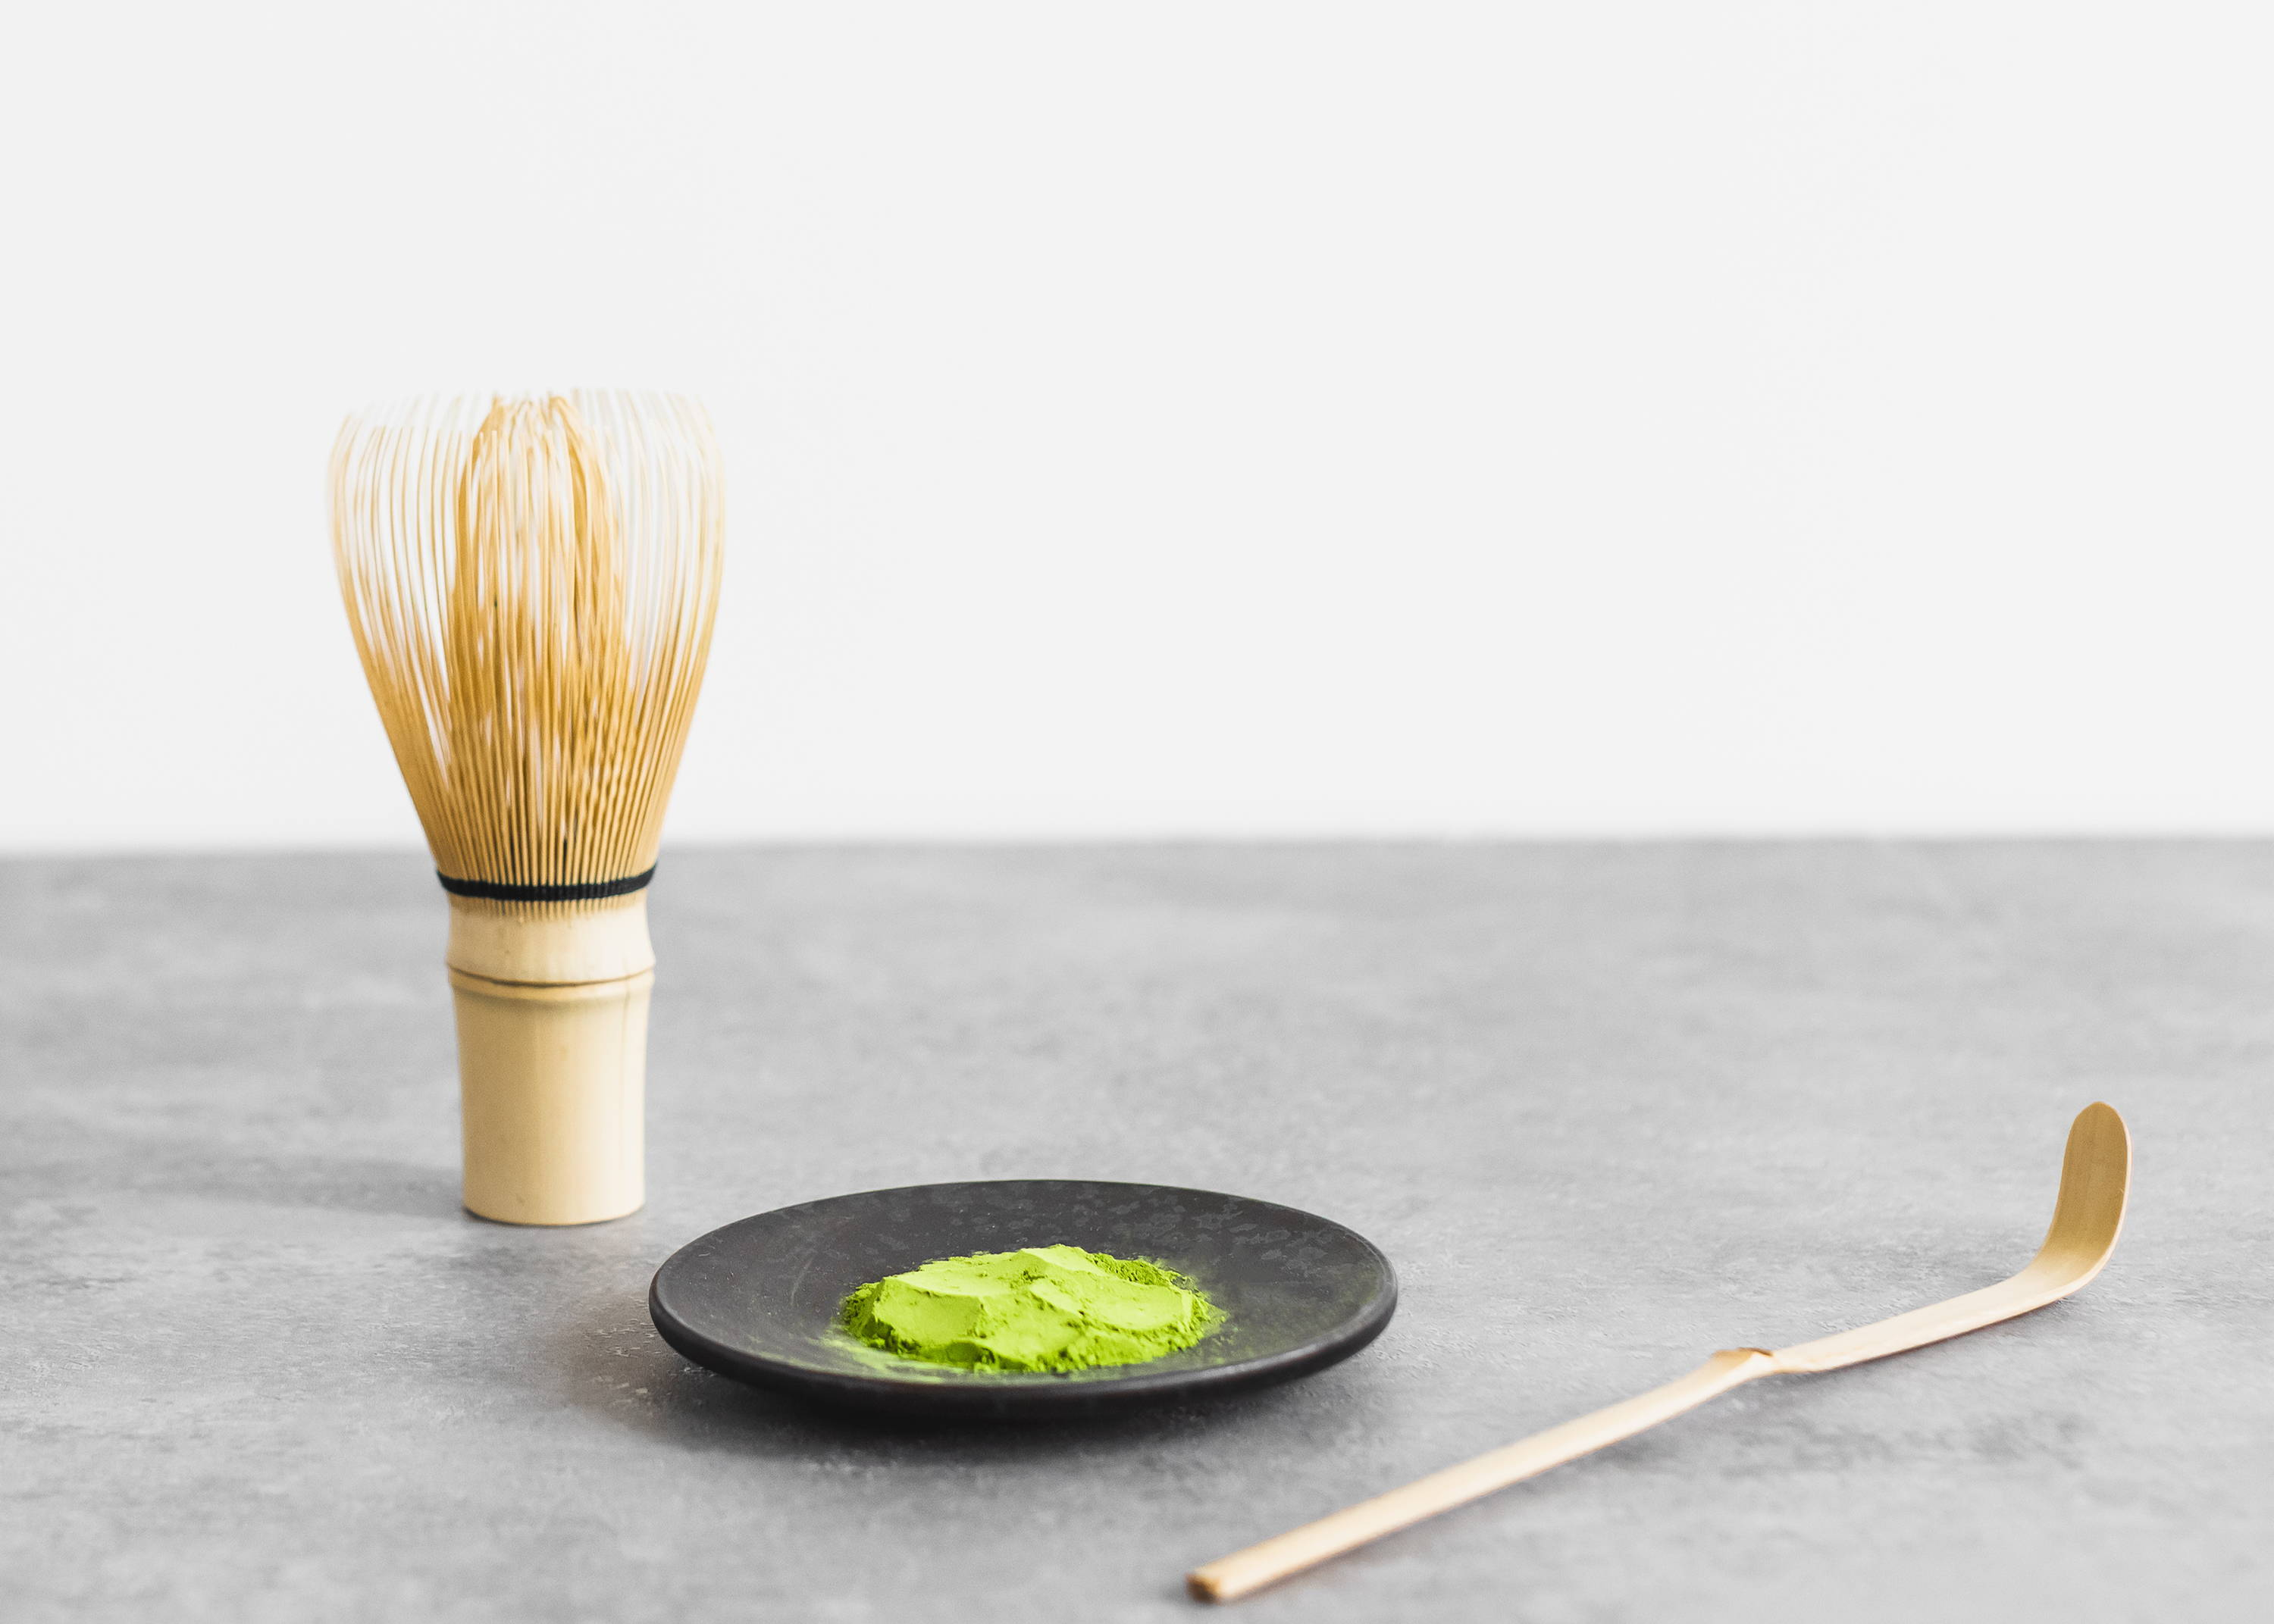 Matcha tea powder and tools